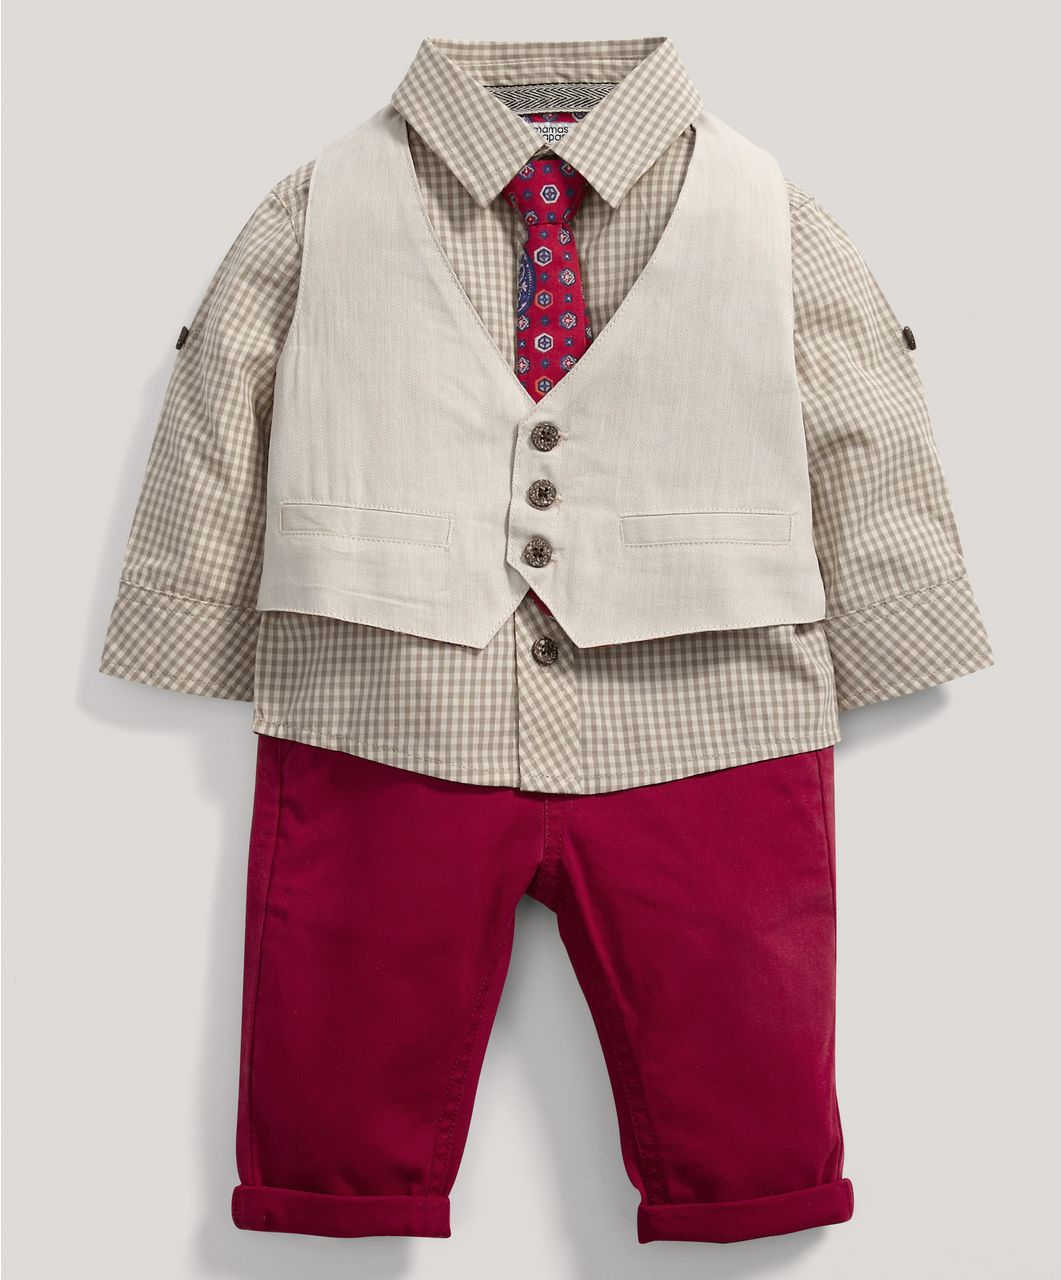 7a2ca3a97019 Boys Limited Edition 4 Piece Waistcoat Set - Special Occasion ...